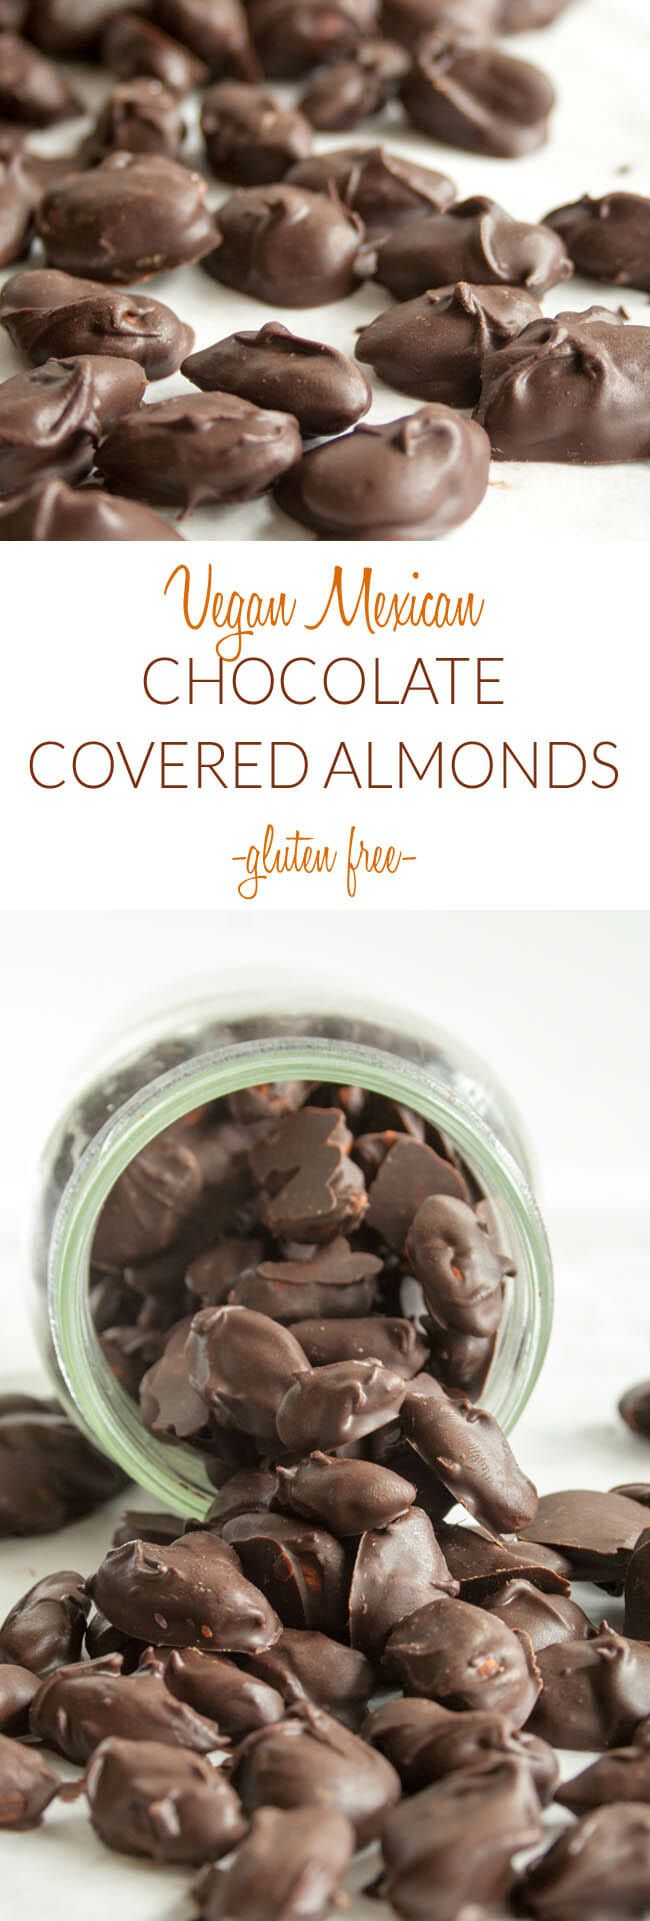 Vegan Mexican Chocolate Covered Almonds (gluten free) - These easy chocolate treats make a great gift for the holidays! They can also be made into clusters!